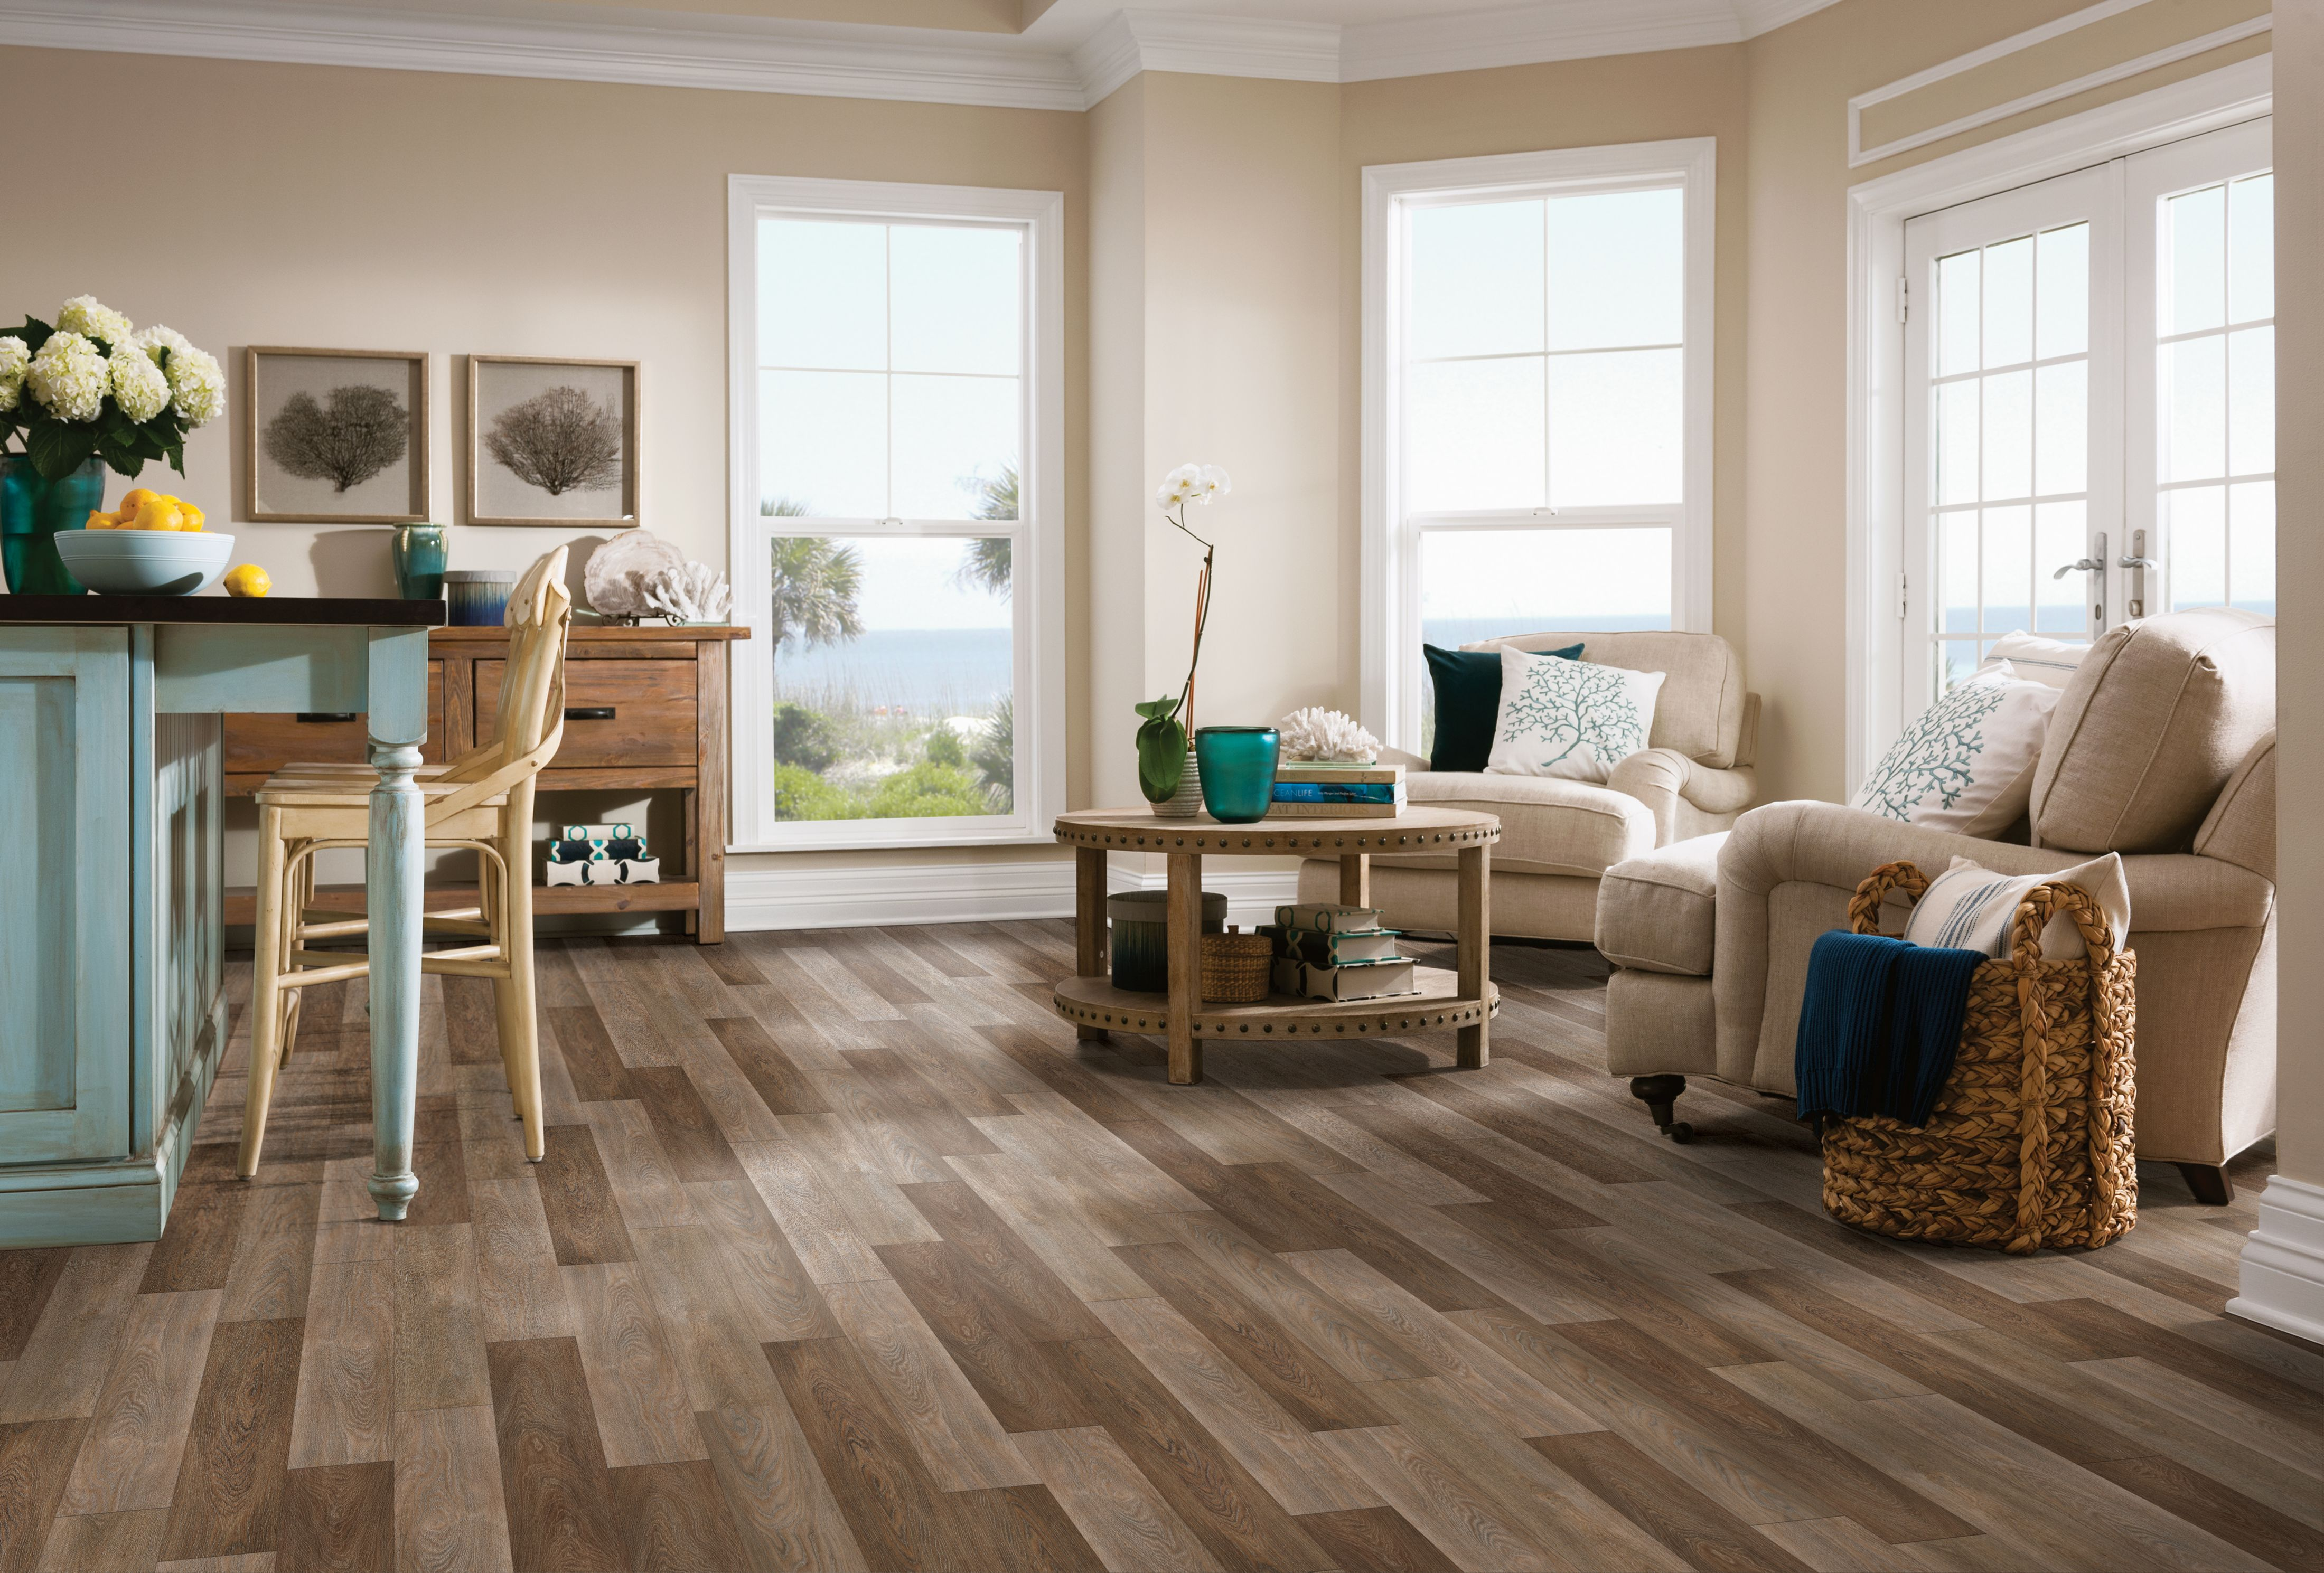 flooring design for living room modern luxury designs what s the difference between linoleum and vinyl vs luxe with rigid core collection in